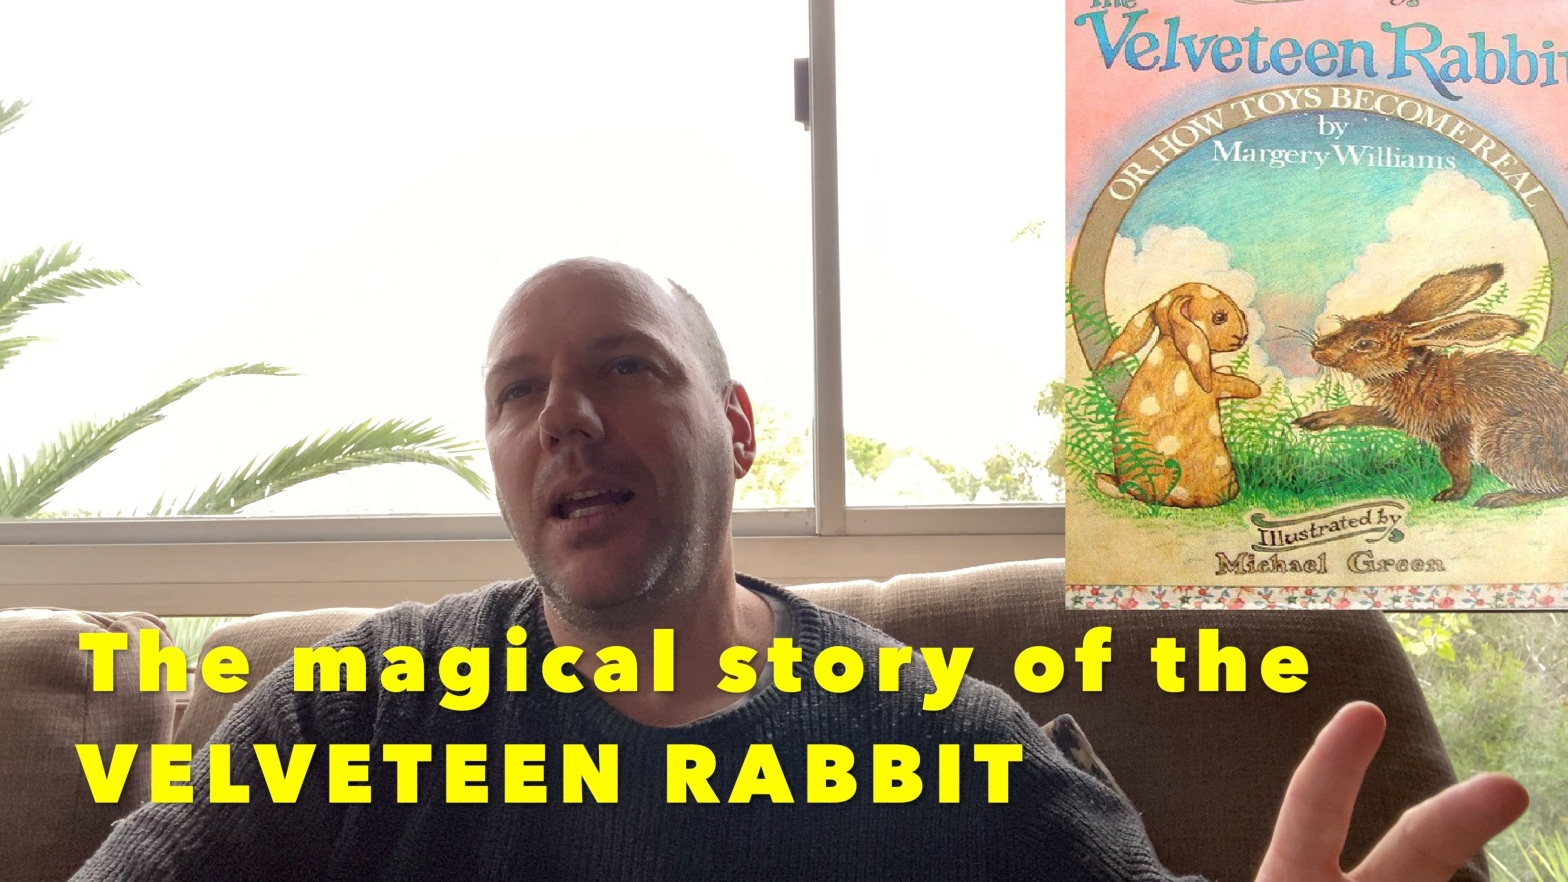 The Spiritual Story of the Velveteen Rabbit